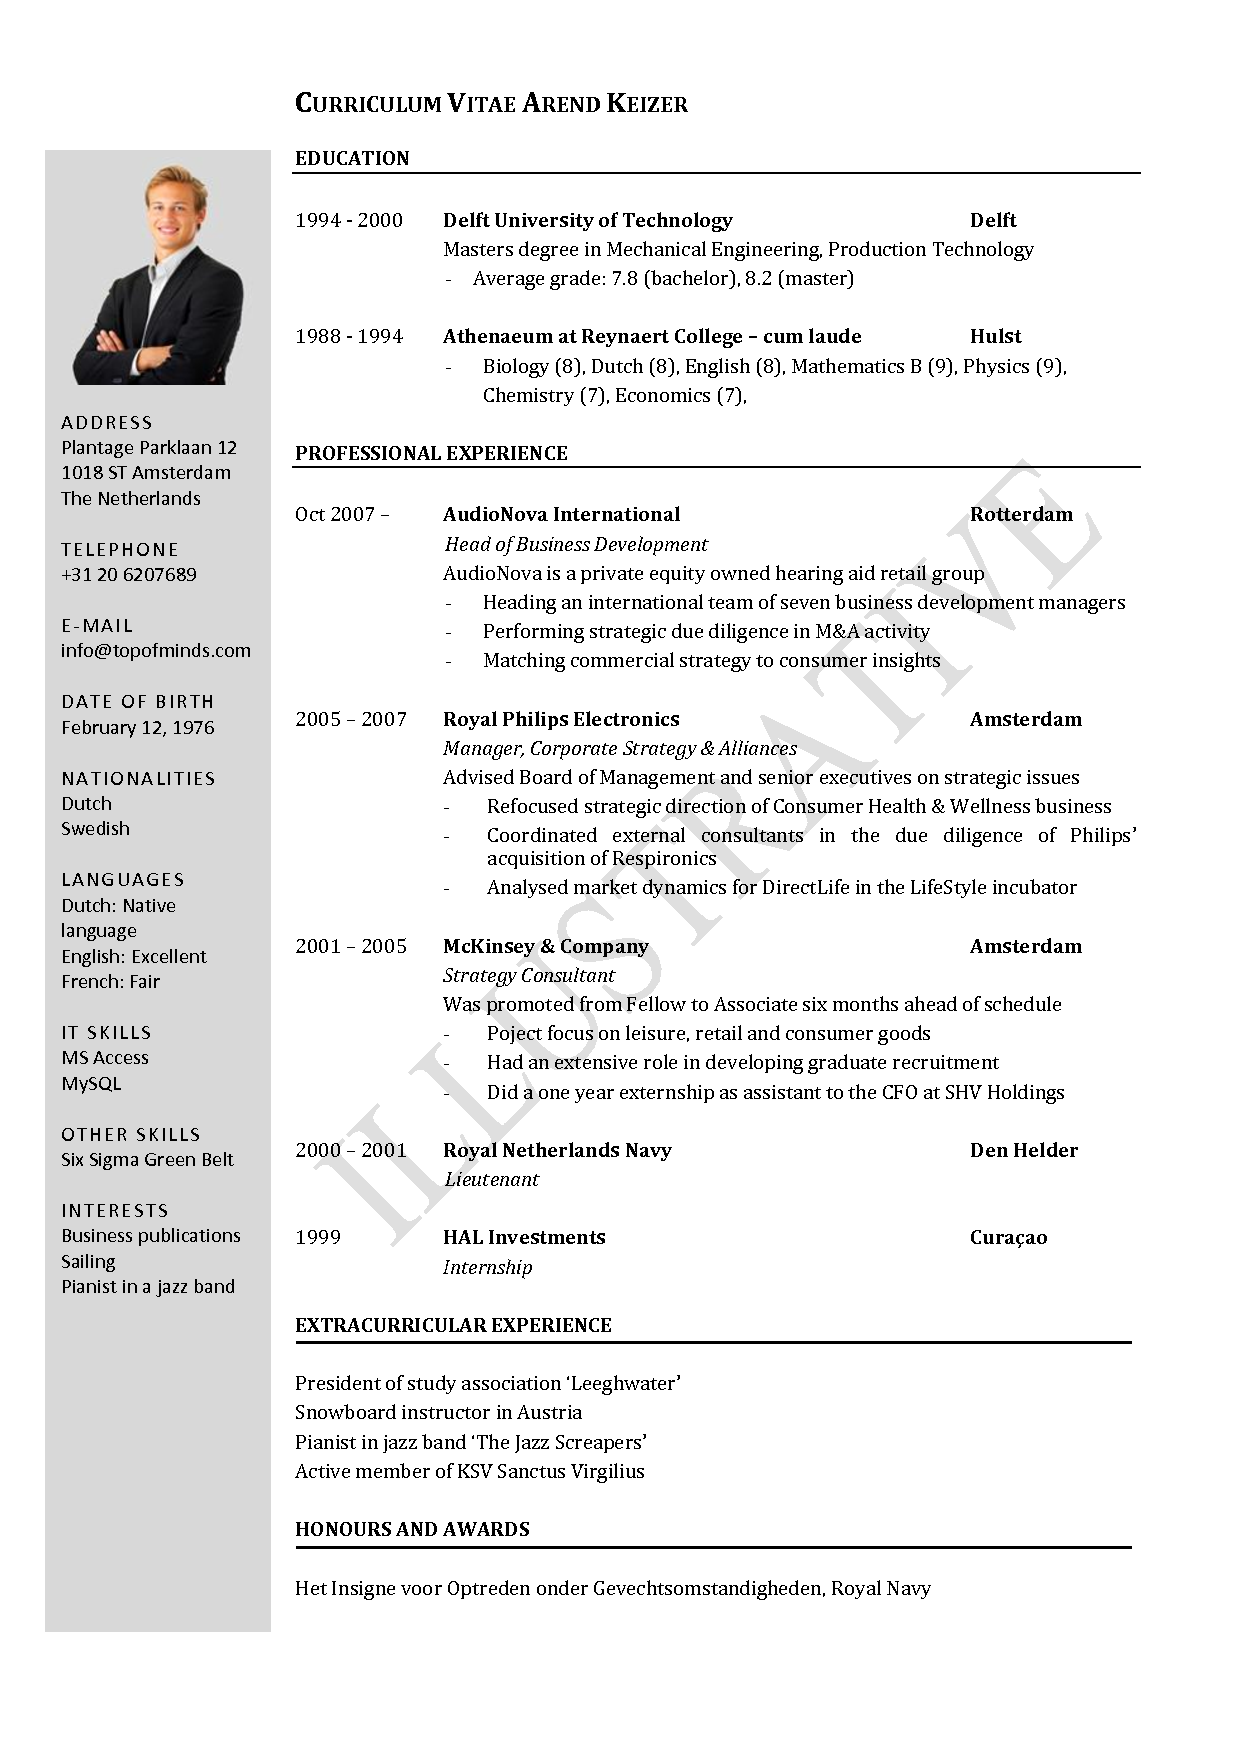 Cv template university student google search cv templates cv template university student google search yelopaper Images